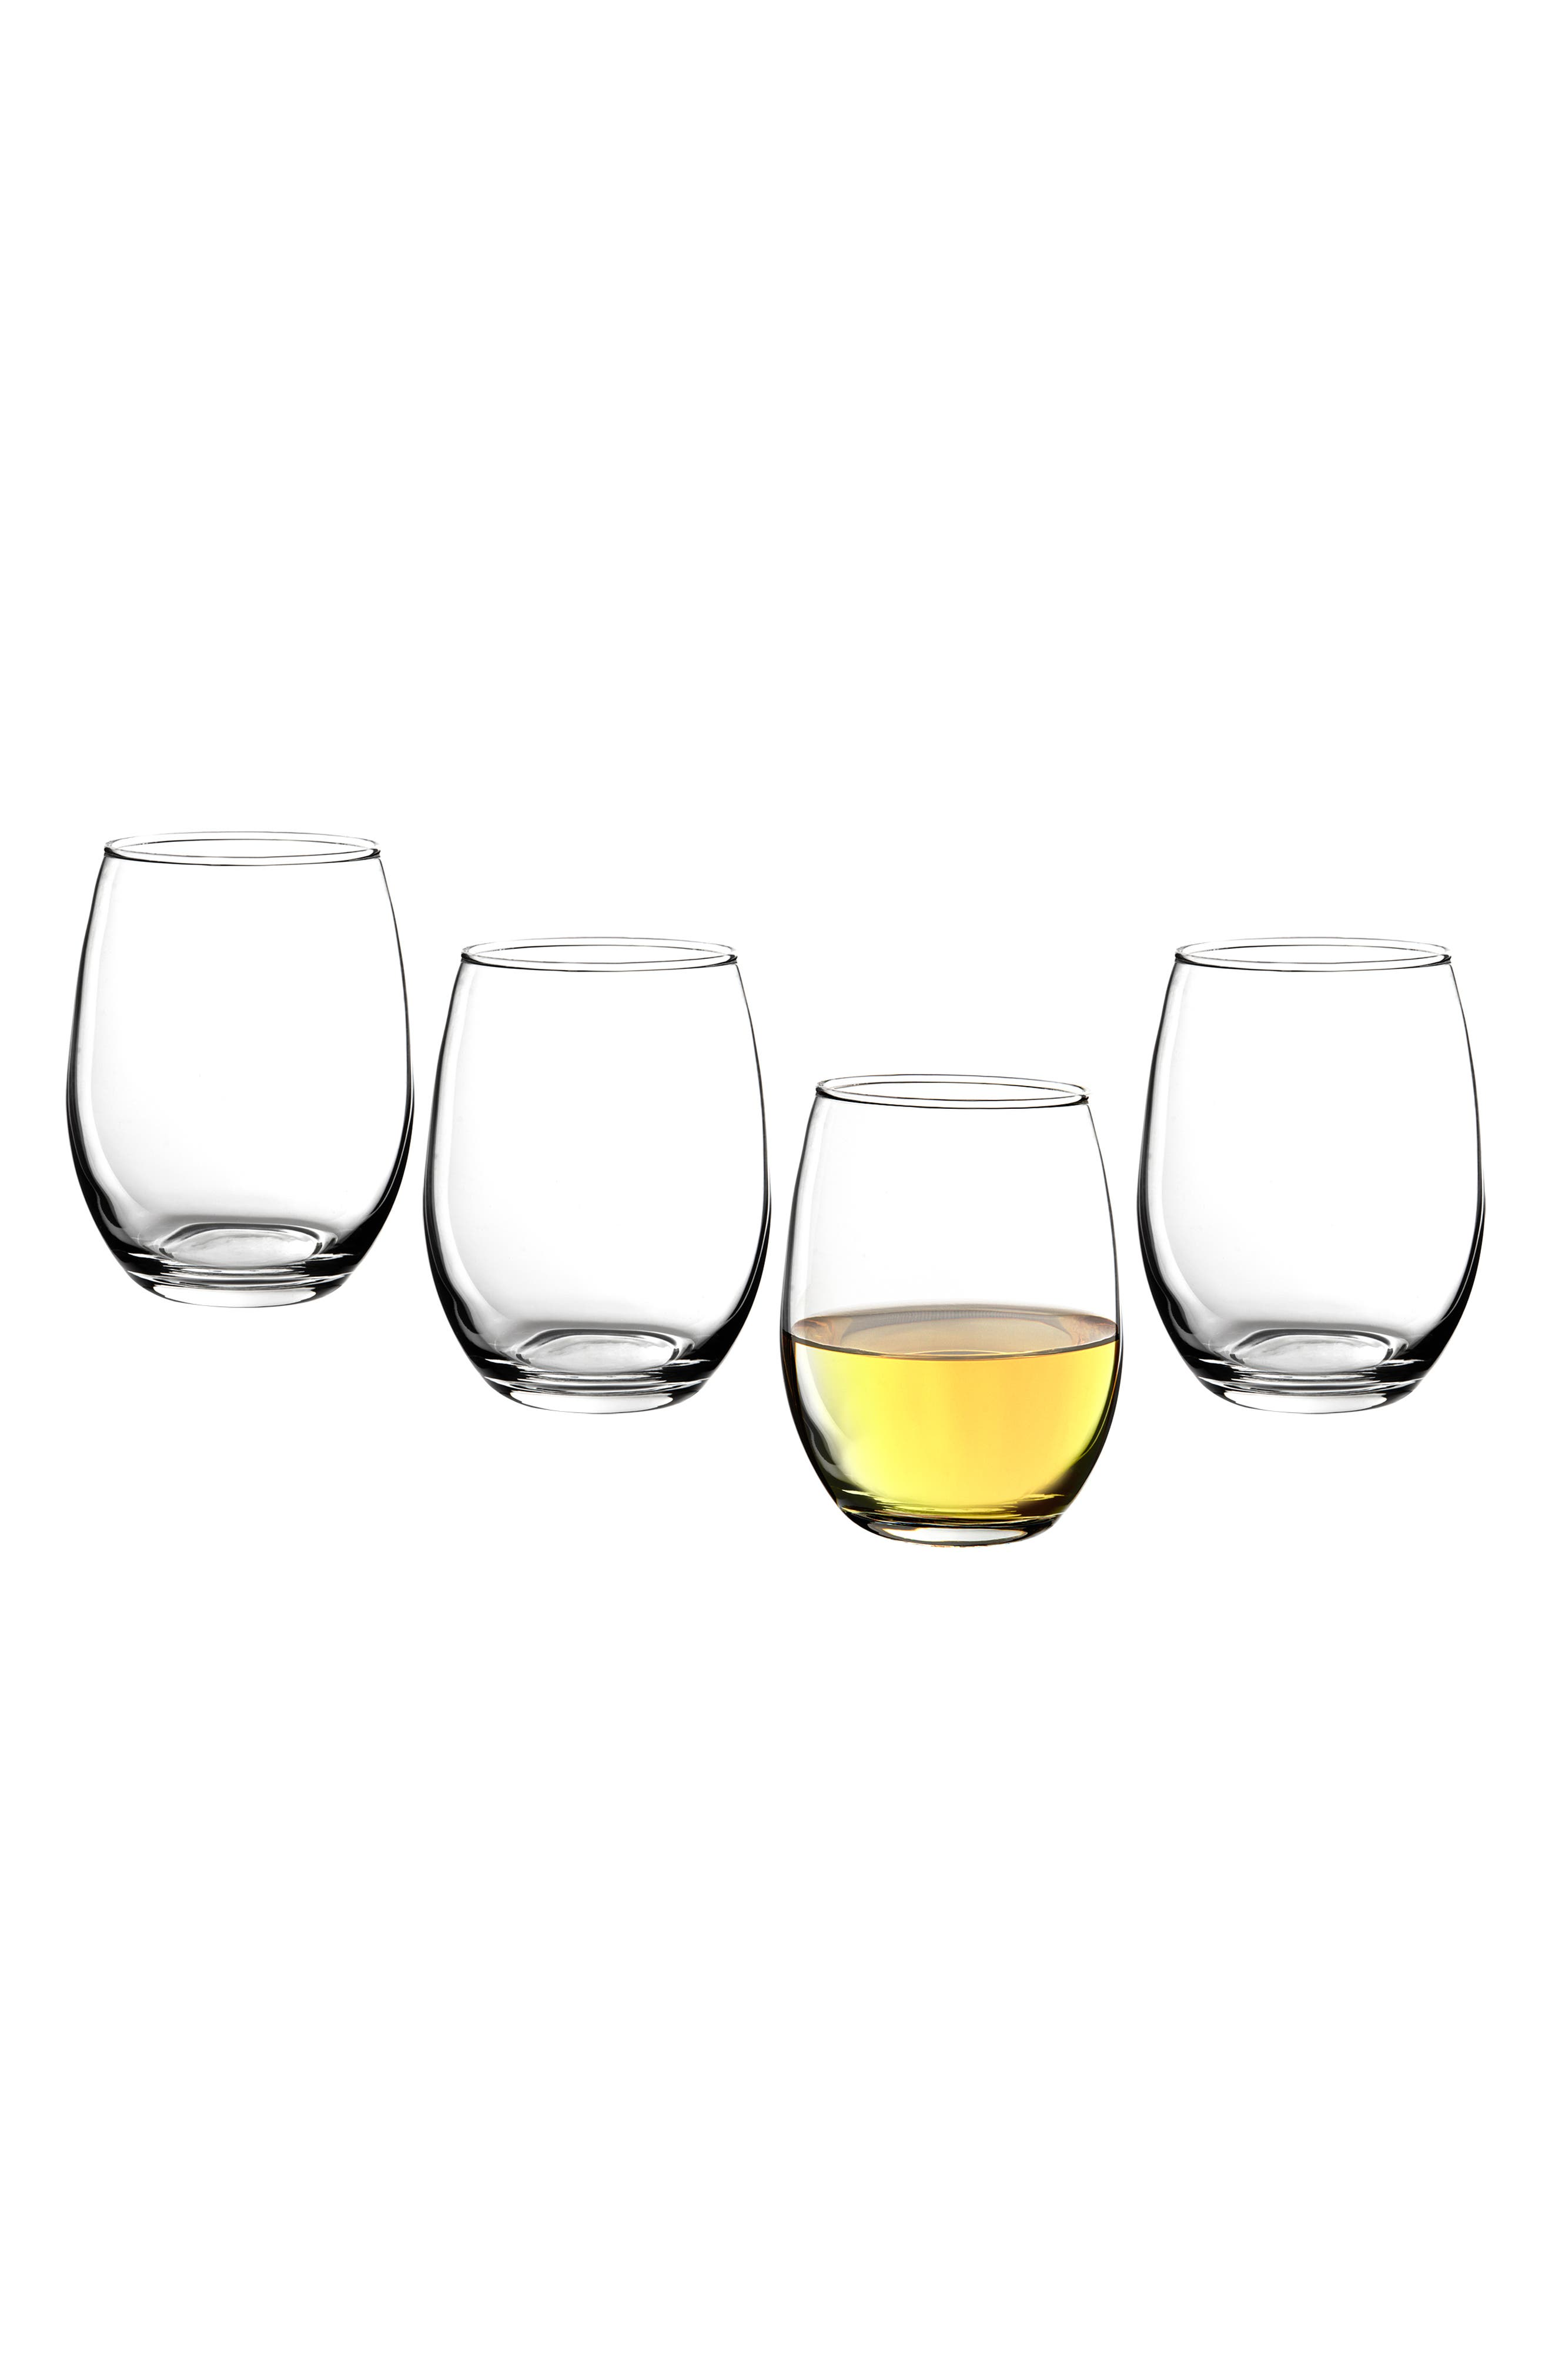 Estate Collection Set of 4 Monogram Stemless Wine Glasses,                         Main,                         color, BLANK